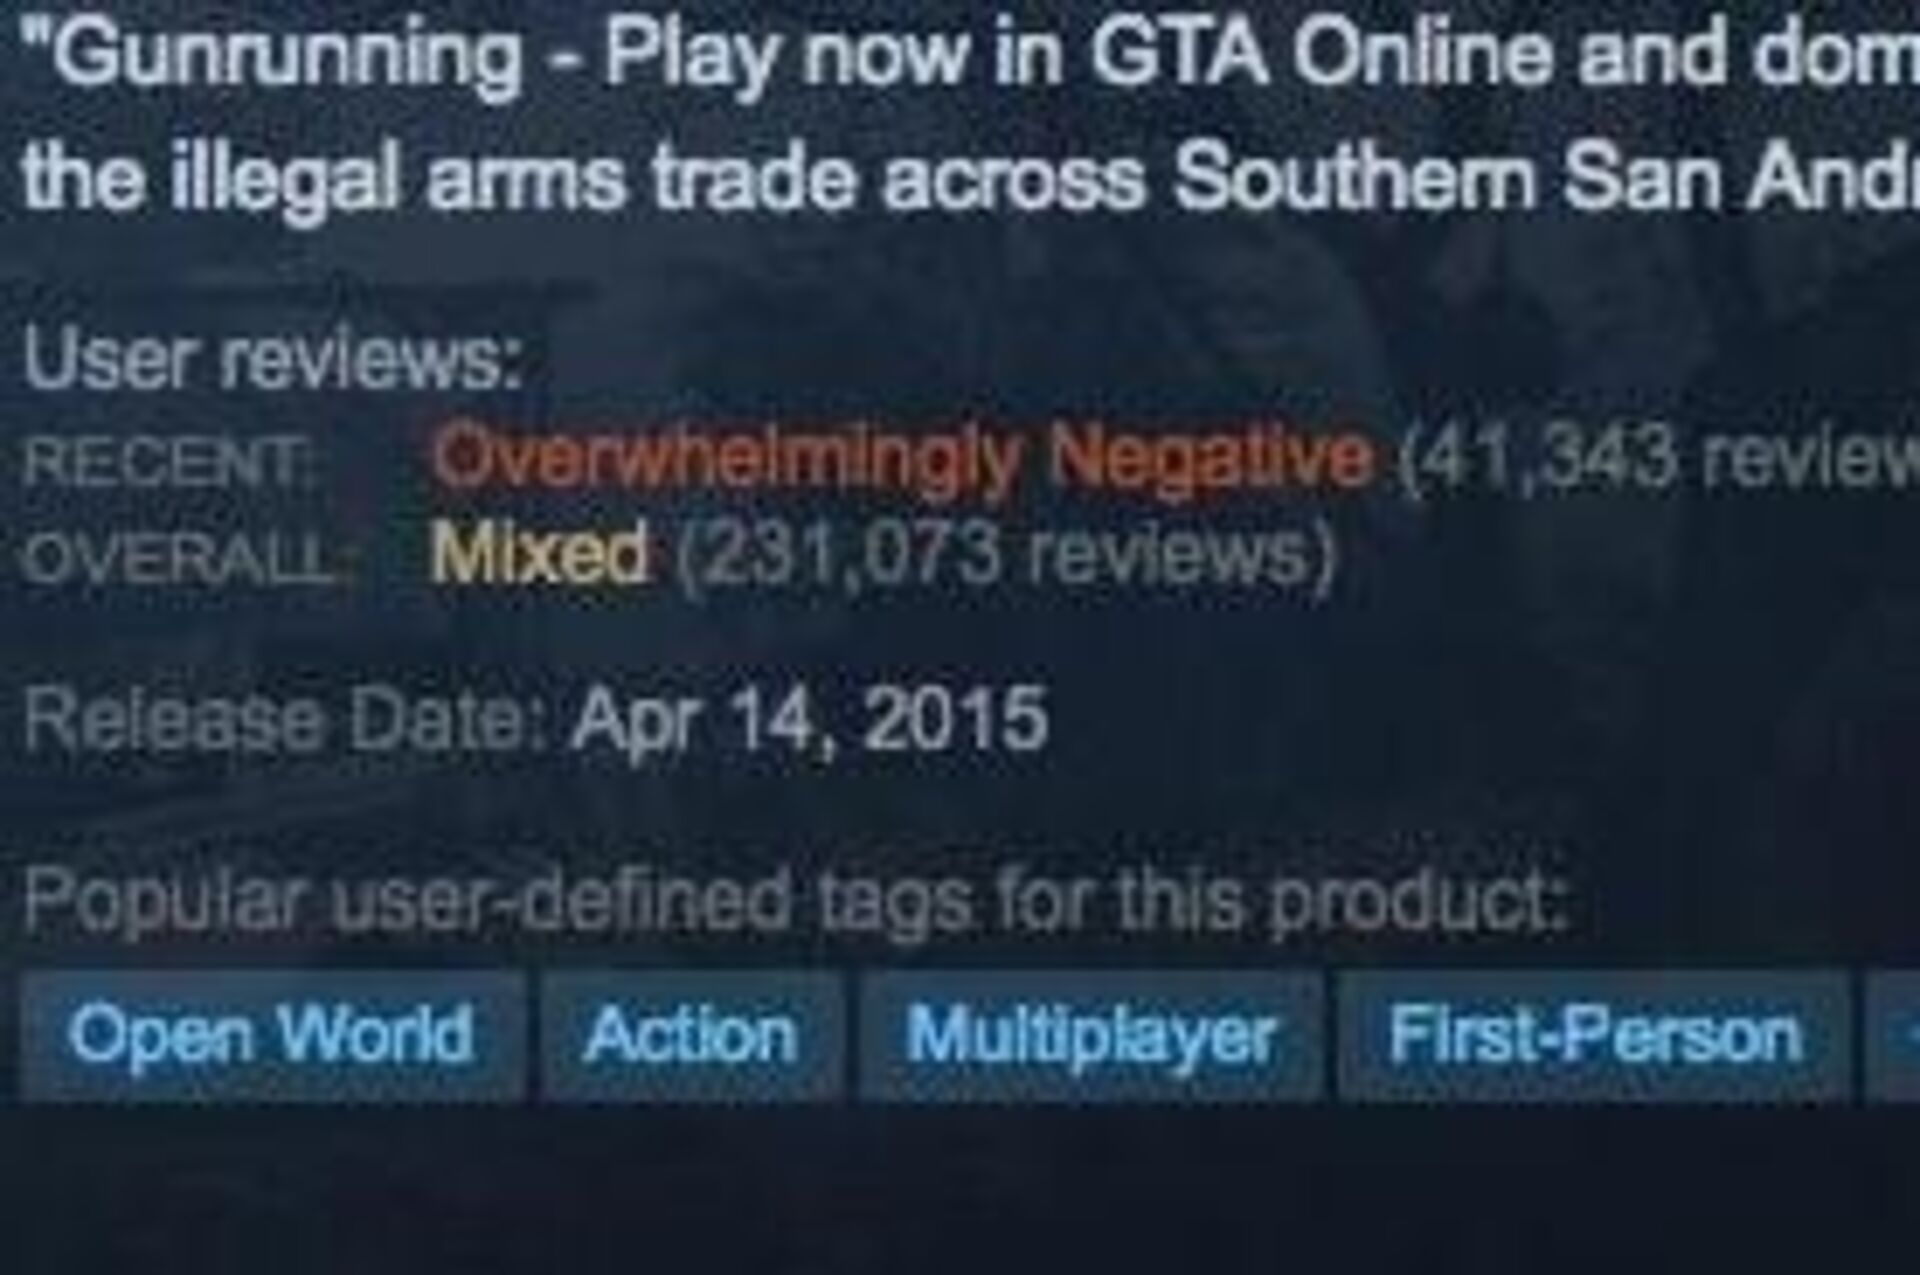 GTA5's recent Steam reviews are